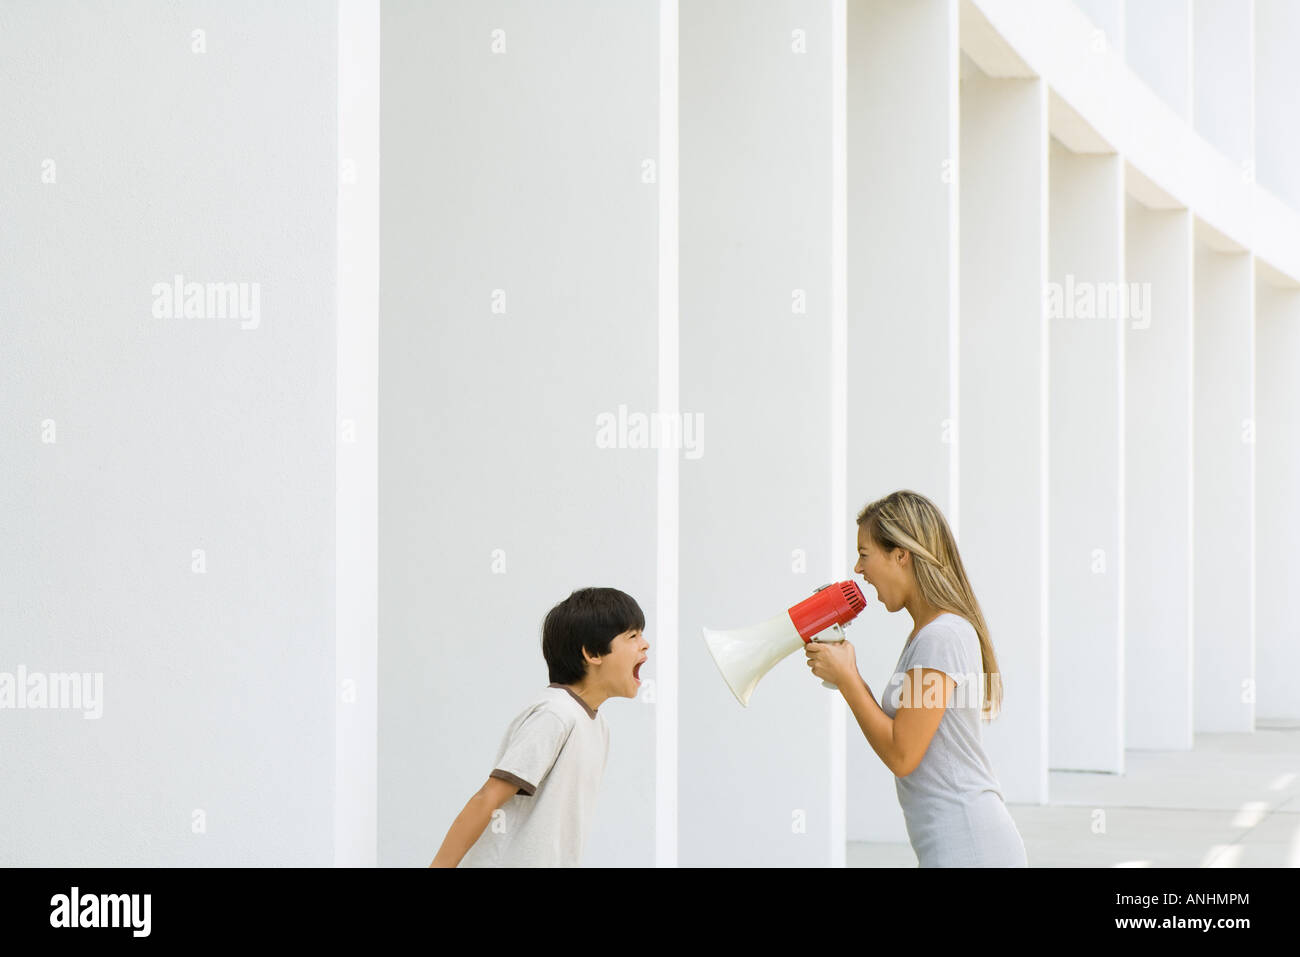 Boy and woman shouting at each other, woman using megaphone - Stock Image